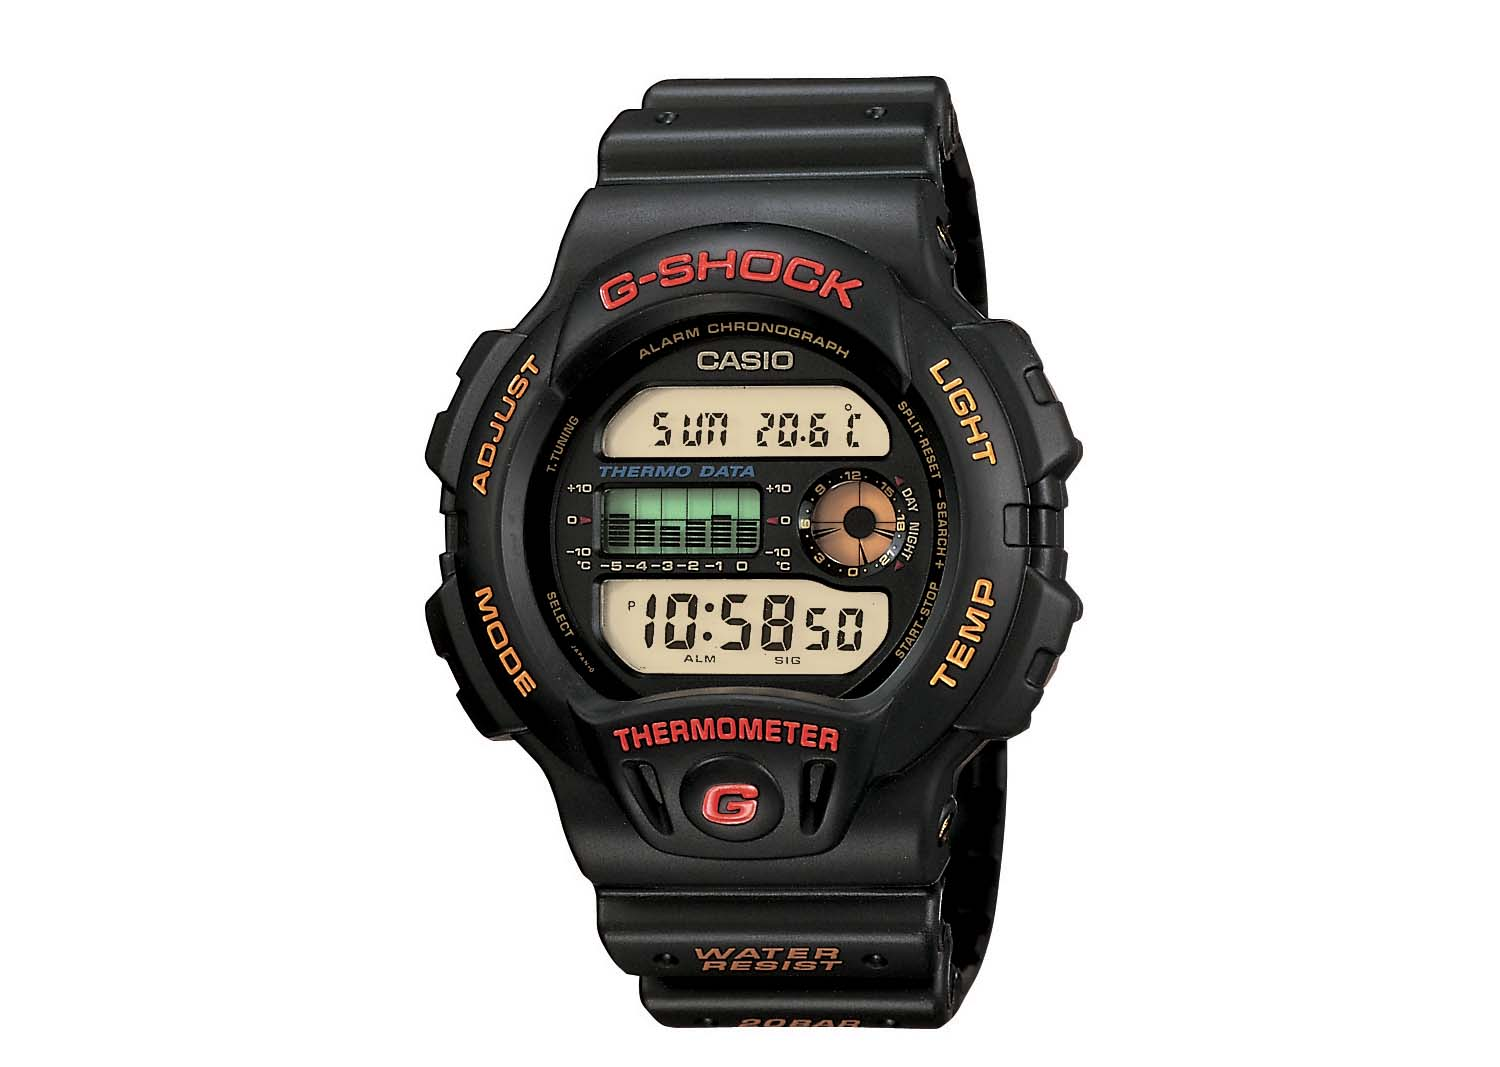 First G-SHOCK With Sensor Technology